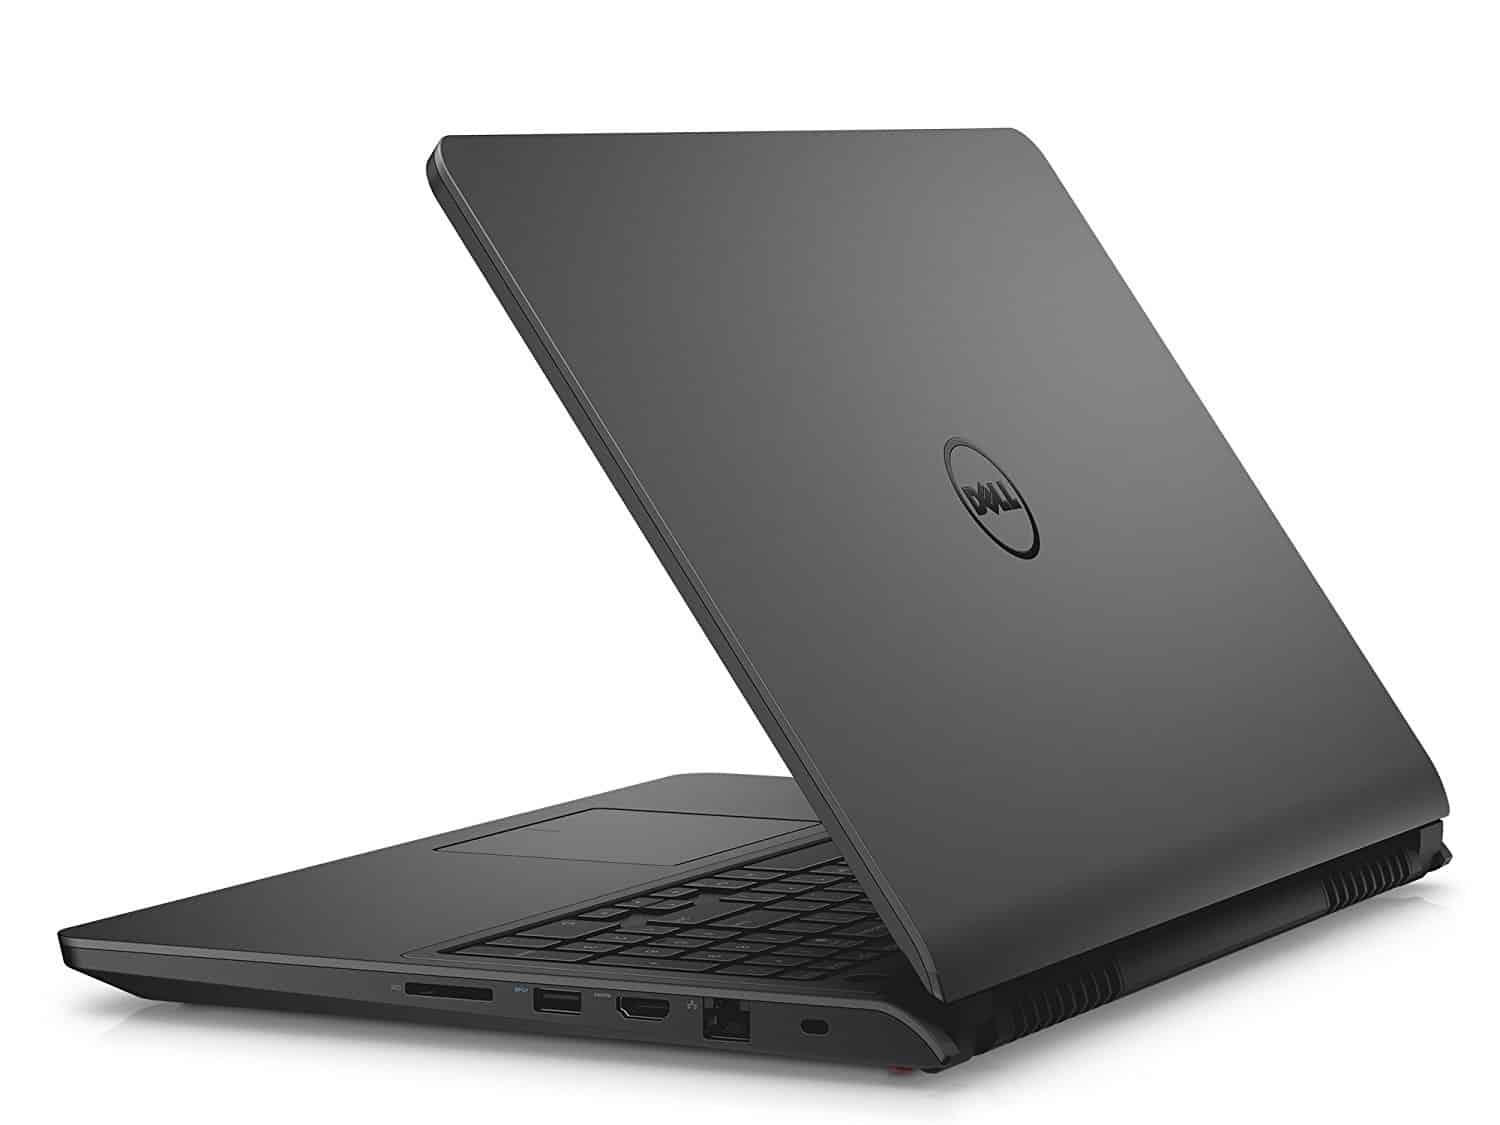 Dell Inspiron i7579 Review